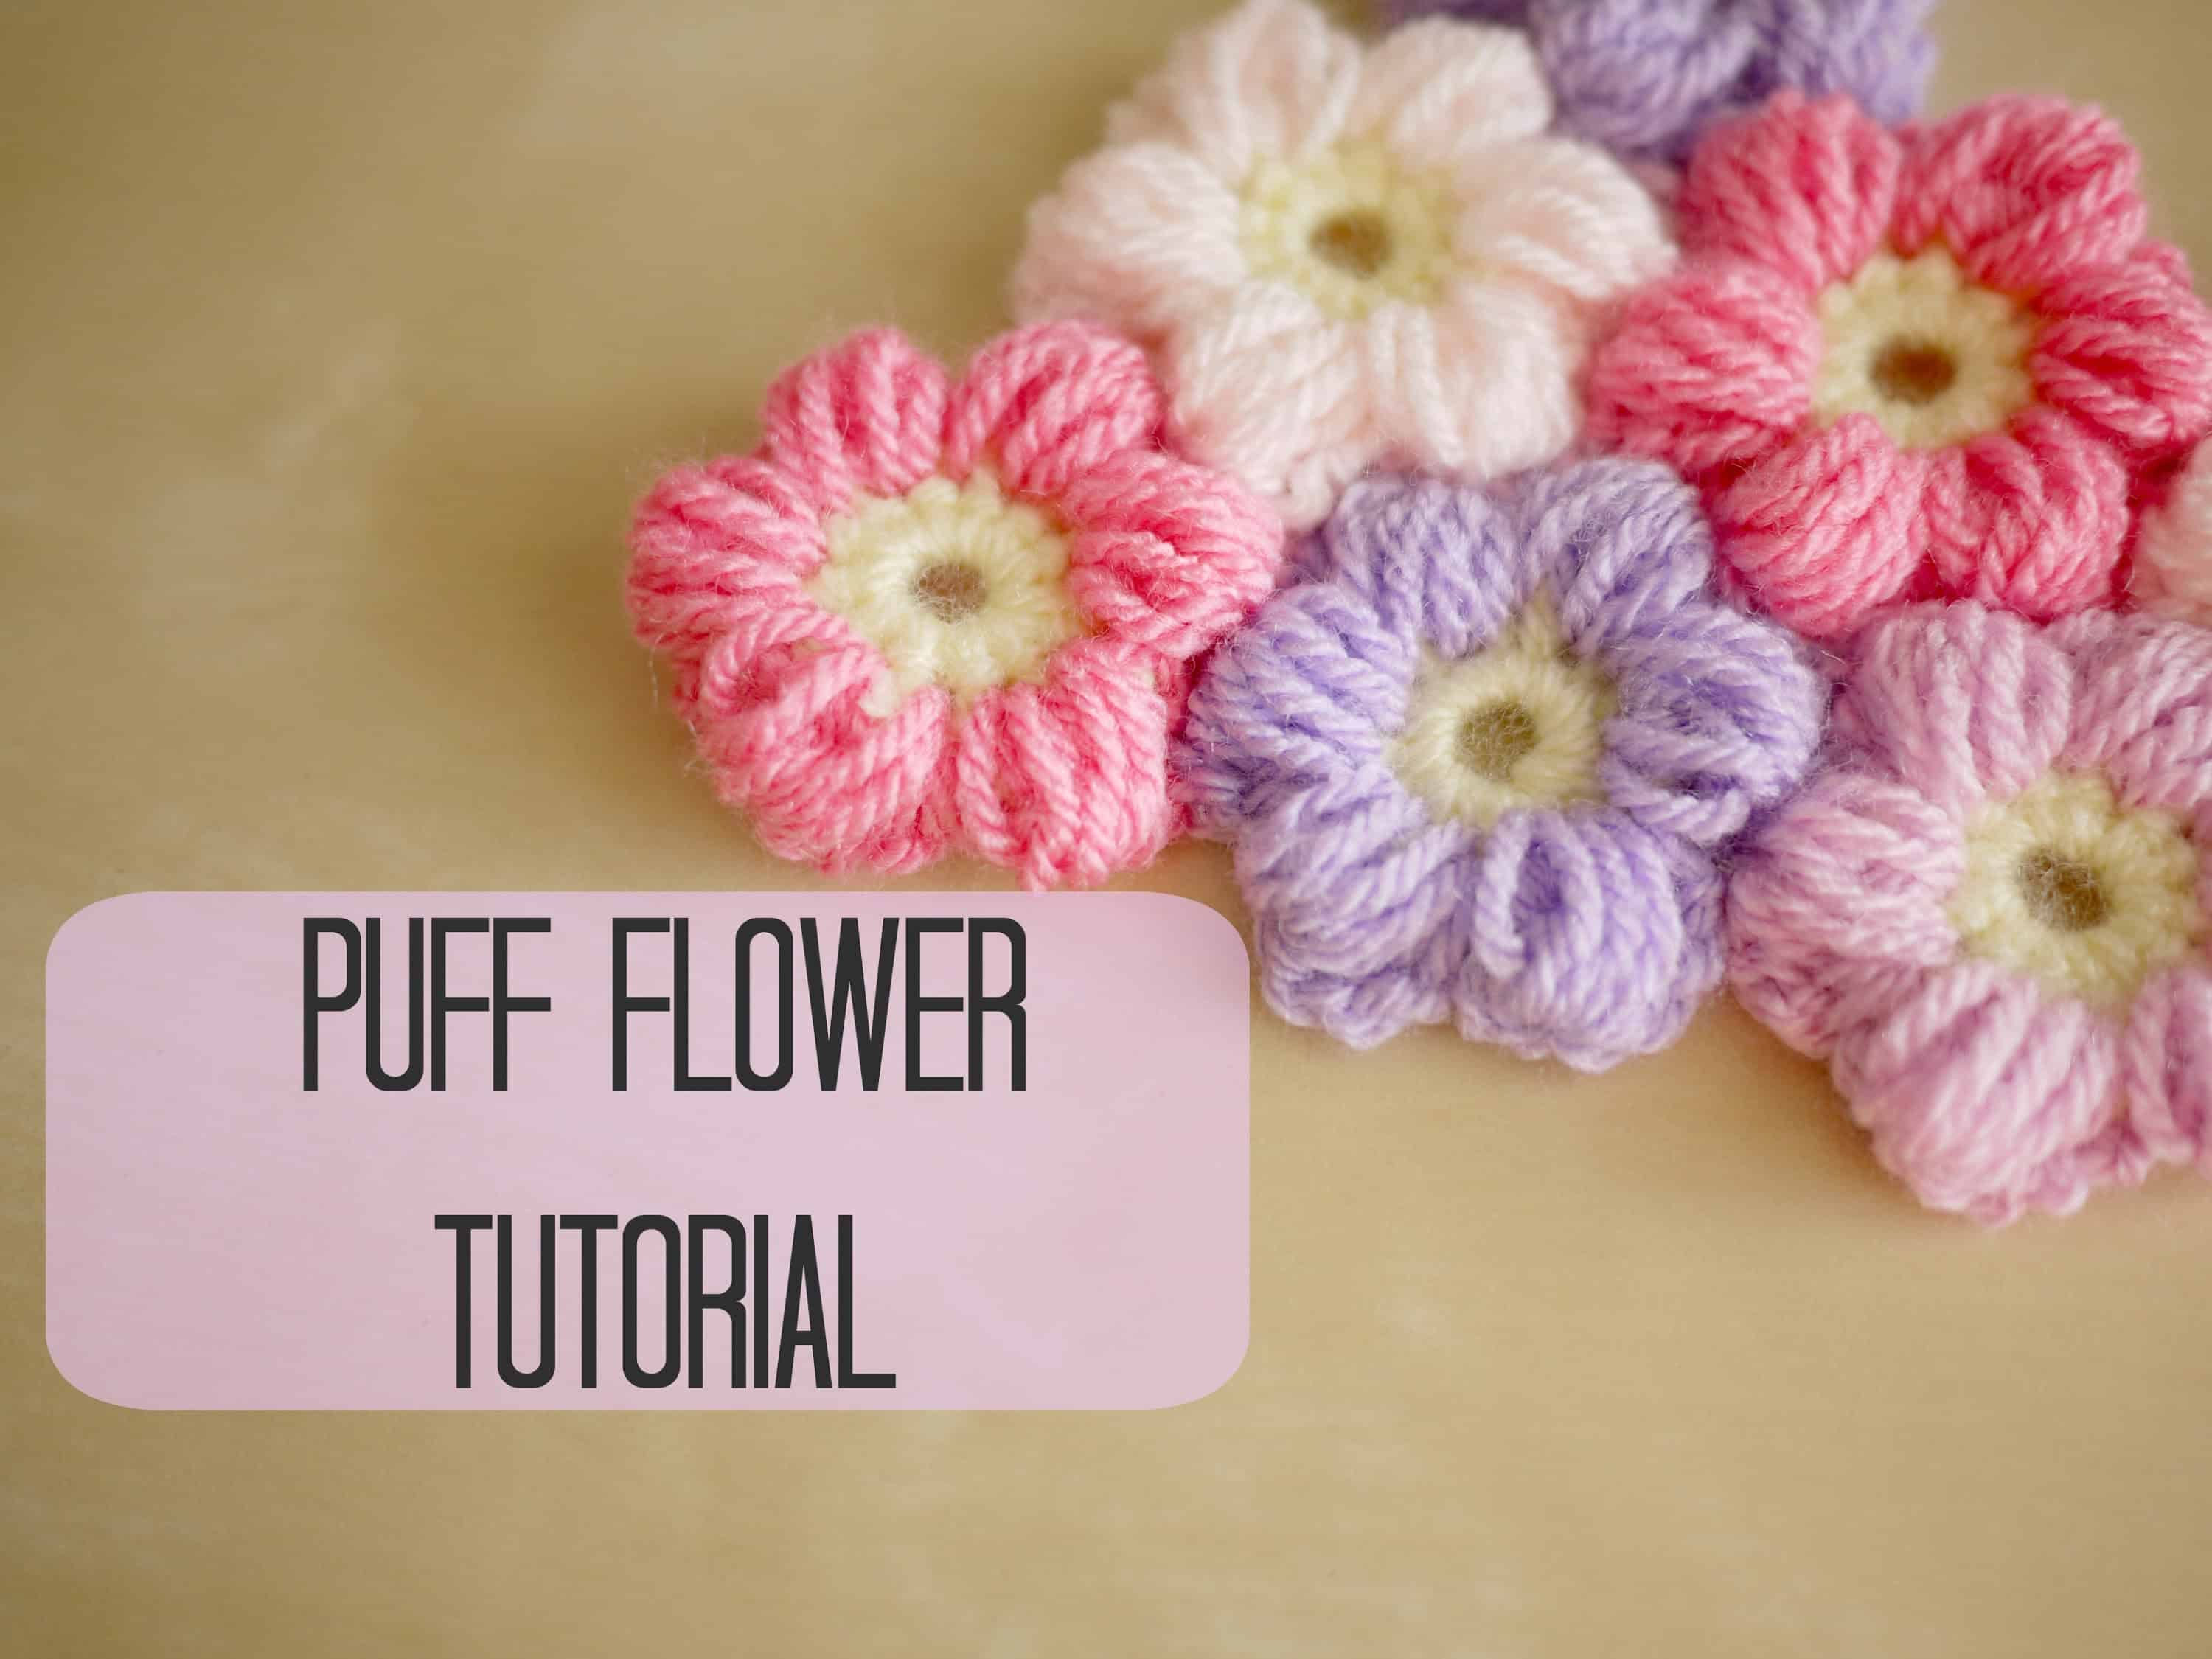 Puff flowers